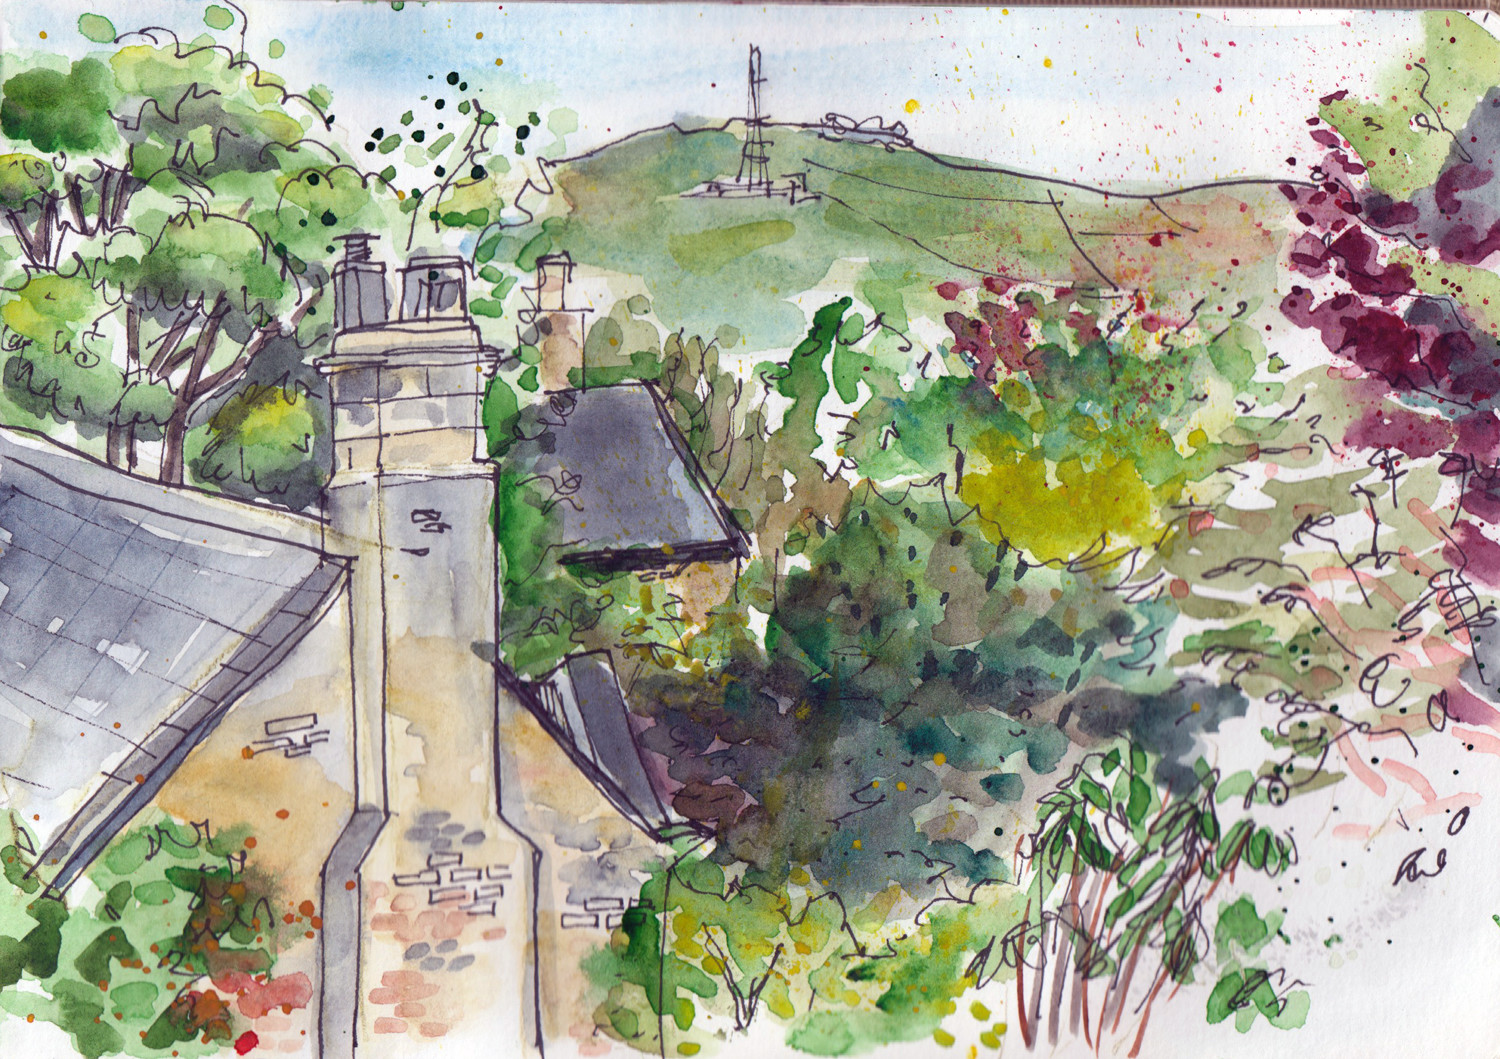 View from the top floor window - Spring Drawing by Sophie Peanut